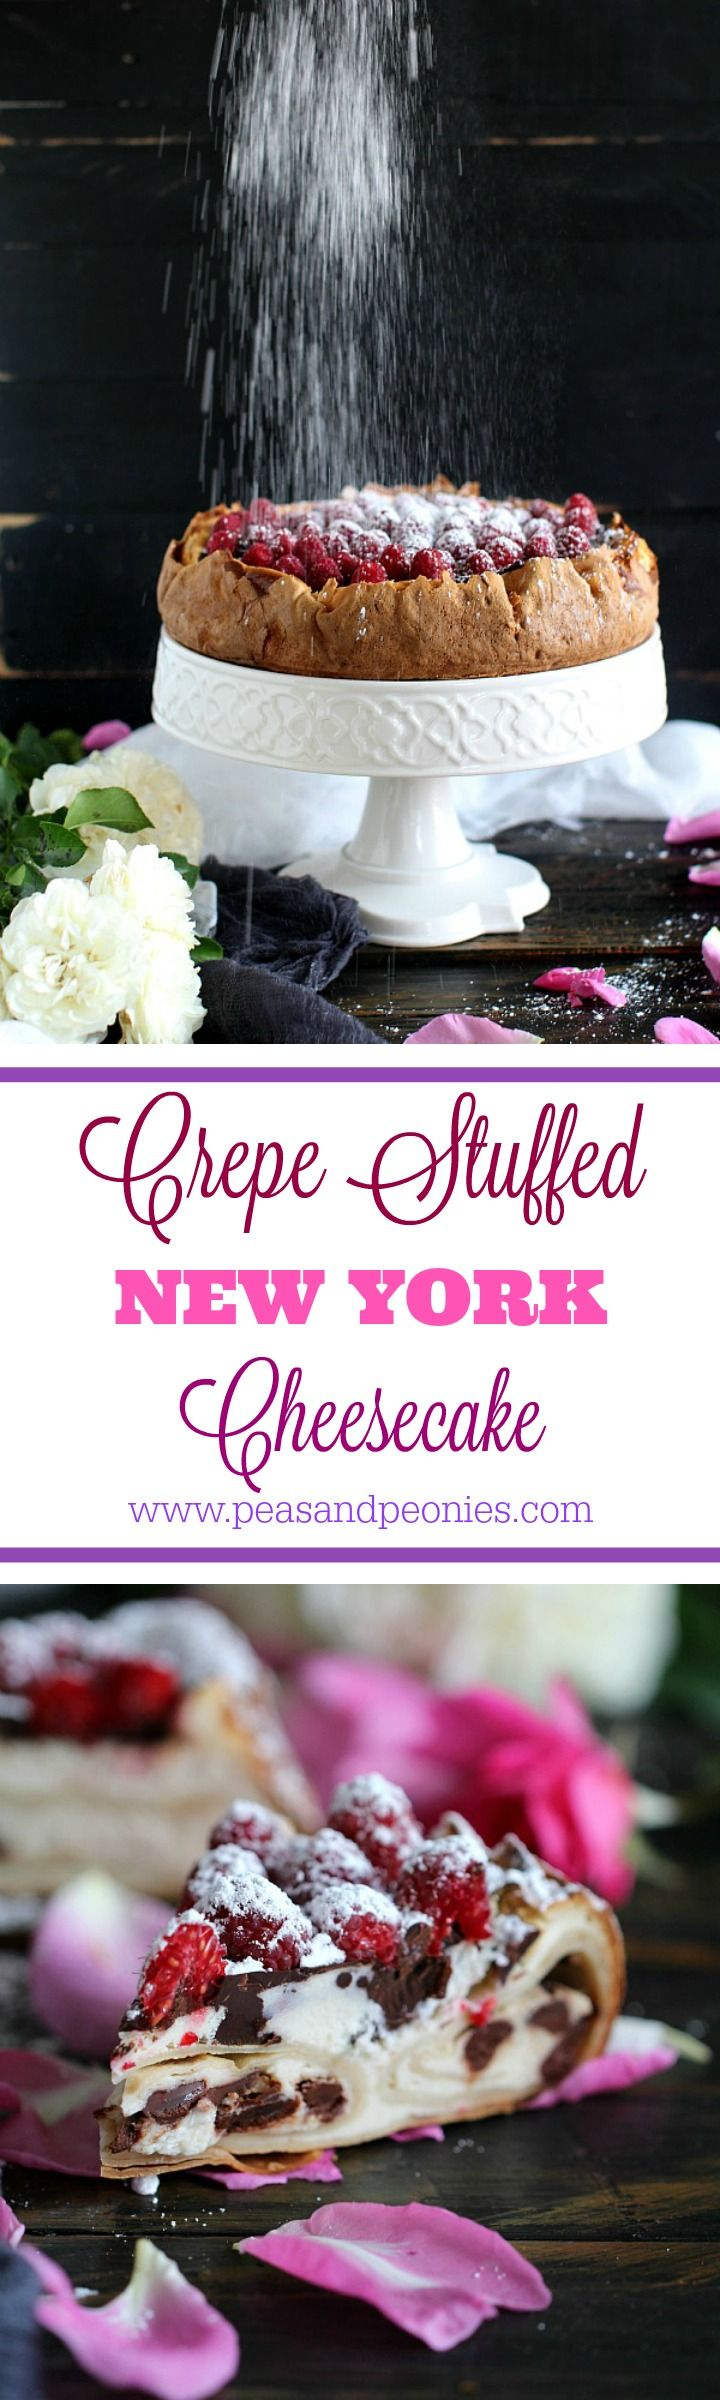 Crepe Stuffed New York Cheesecake - This crepe stuffed New York cheesecake is an incredible combo of buttery, ricotta chocolate chip stuffed crepes baked into a NY cheesecake. Peas and Peonies #crepecake #newyorkcheesecake #cheesecake #creamy